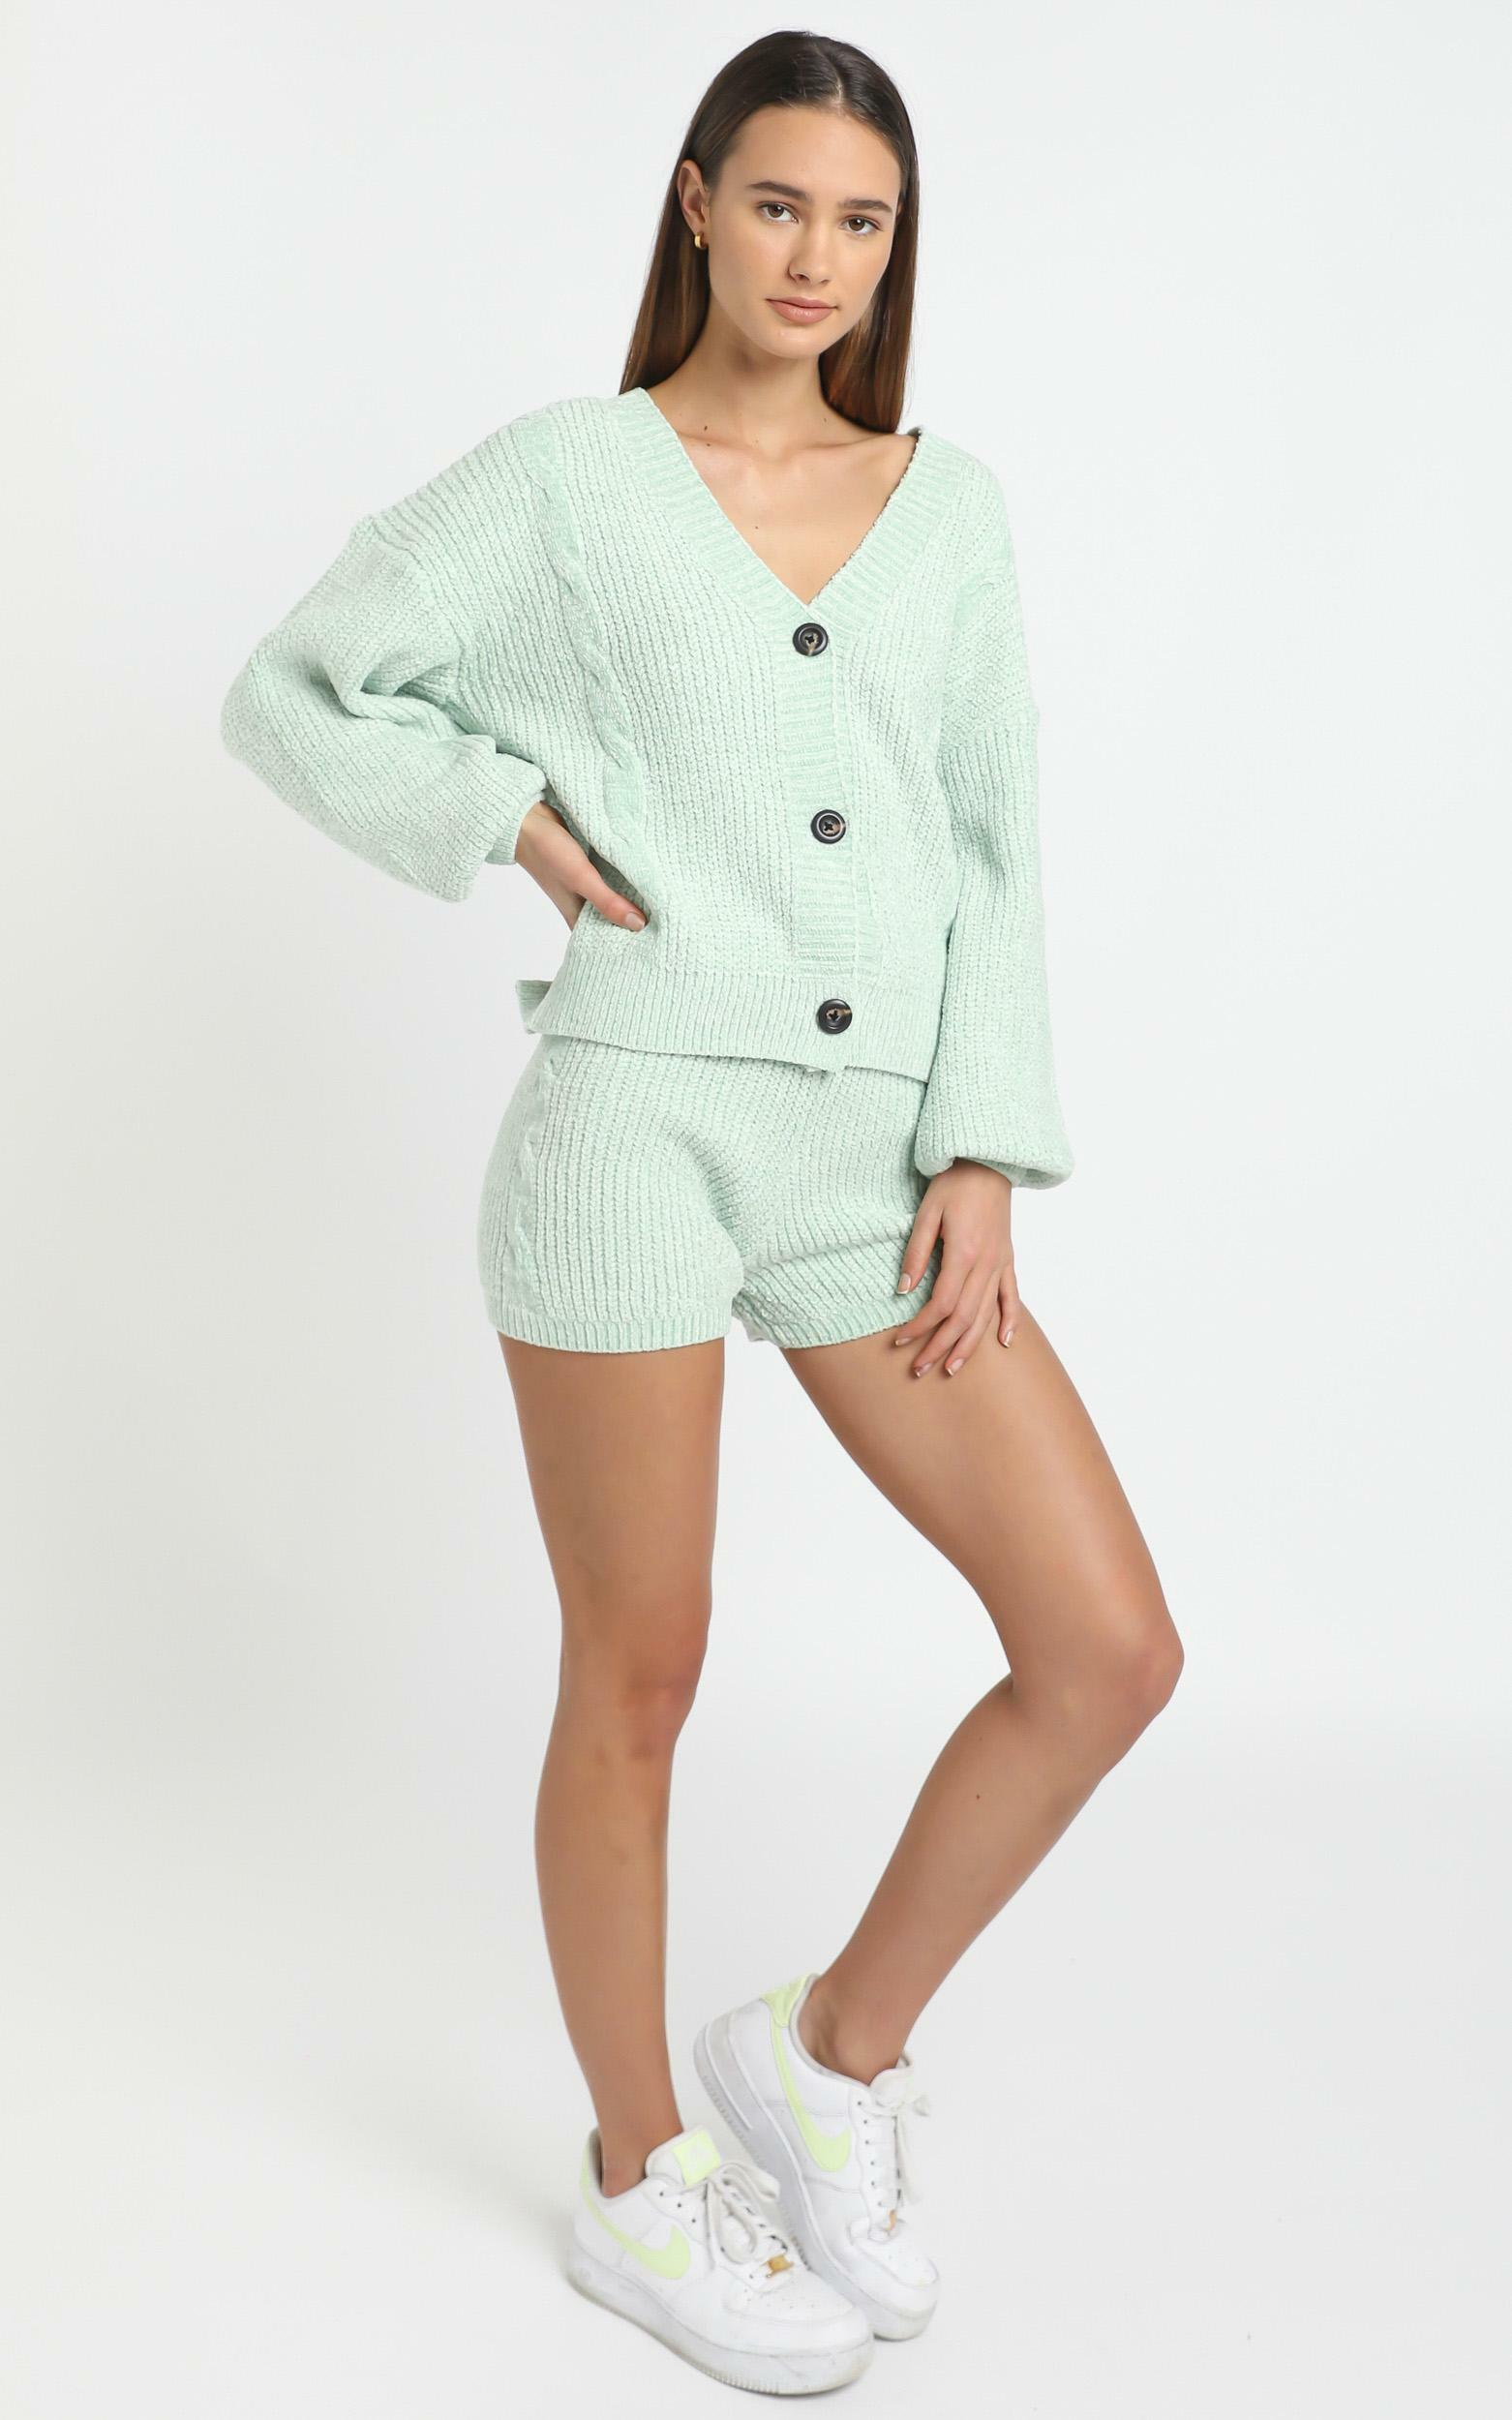 Zion Two Piece Set in Mint - 12 (L), GRN1, hi-res image number null